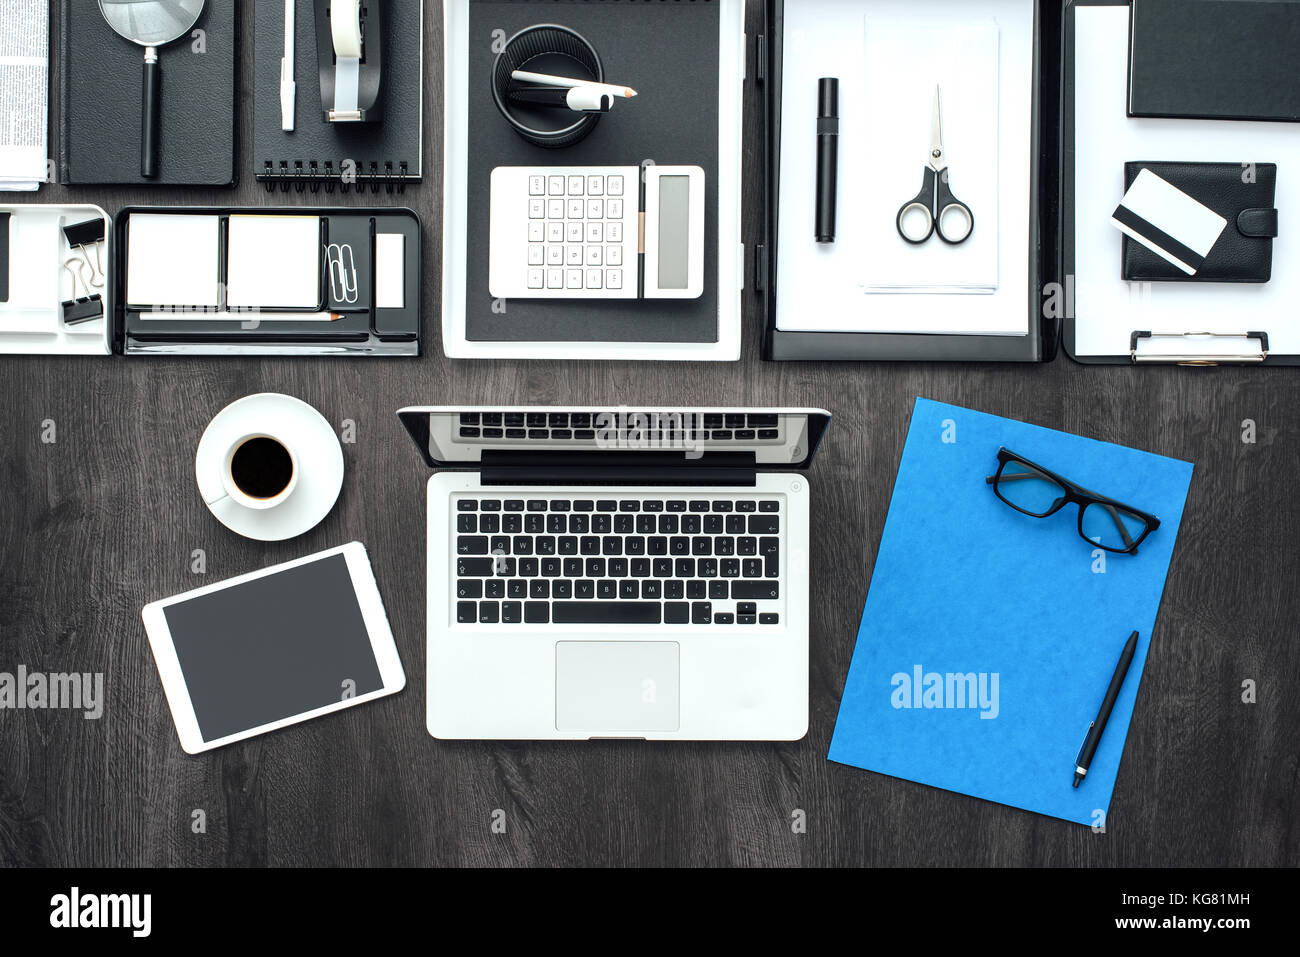 corporate business office desktop with laptop tablet and office